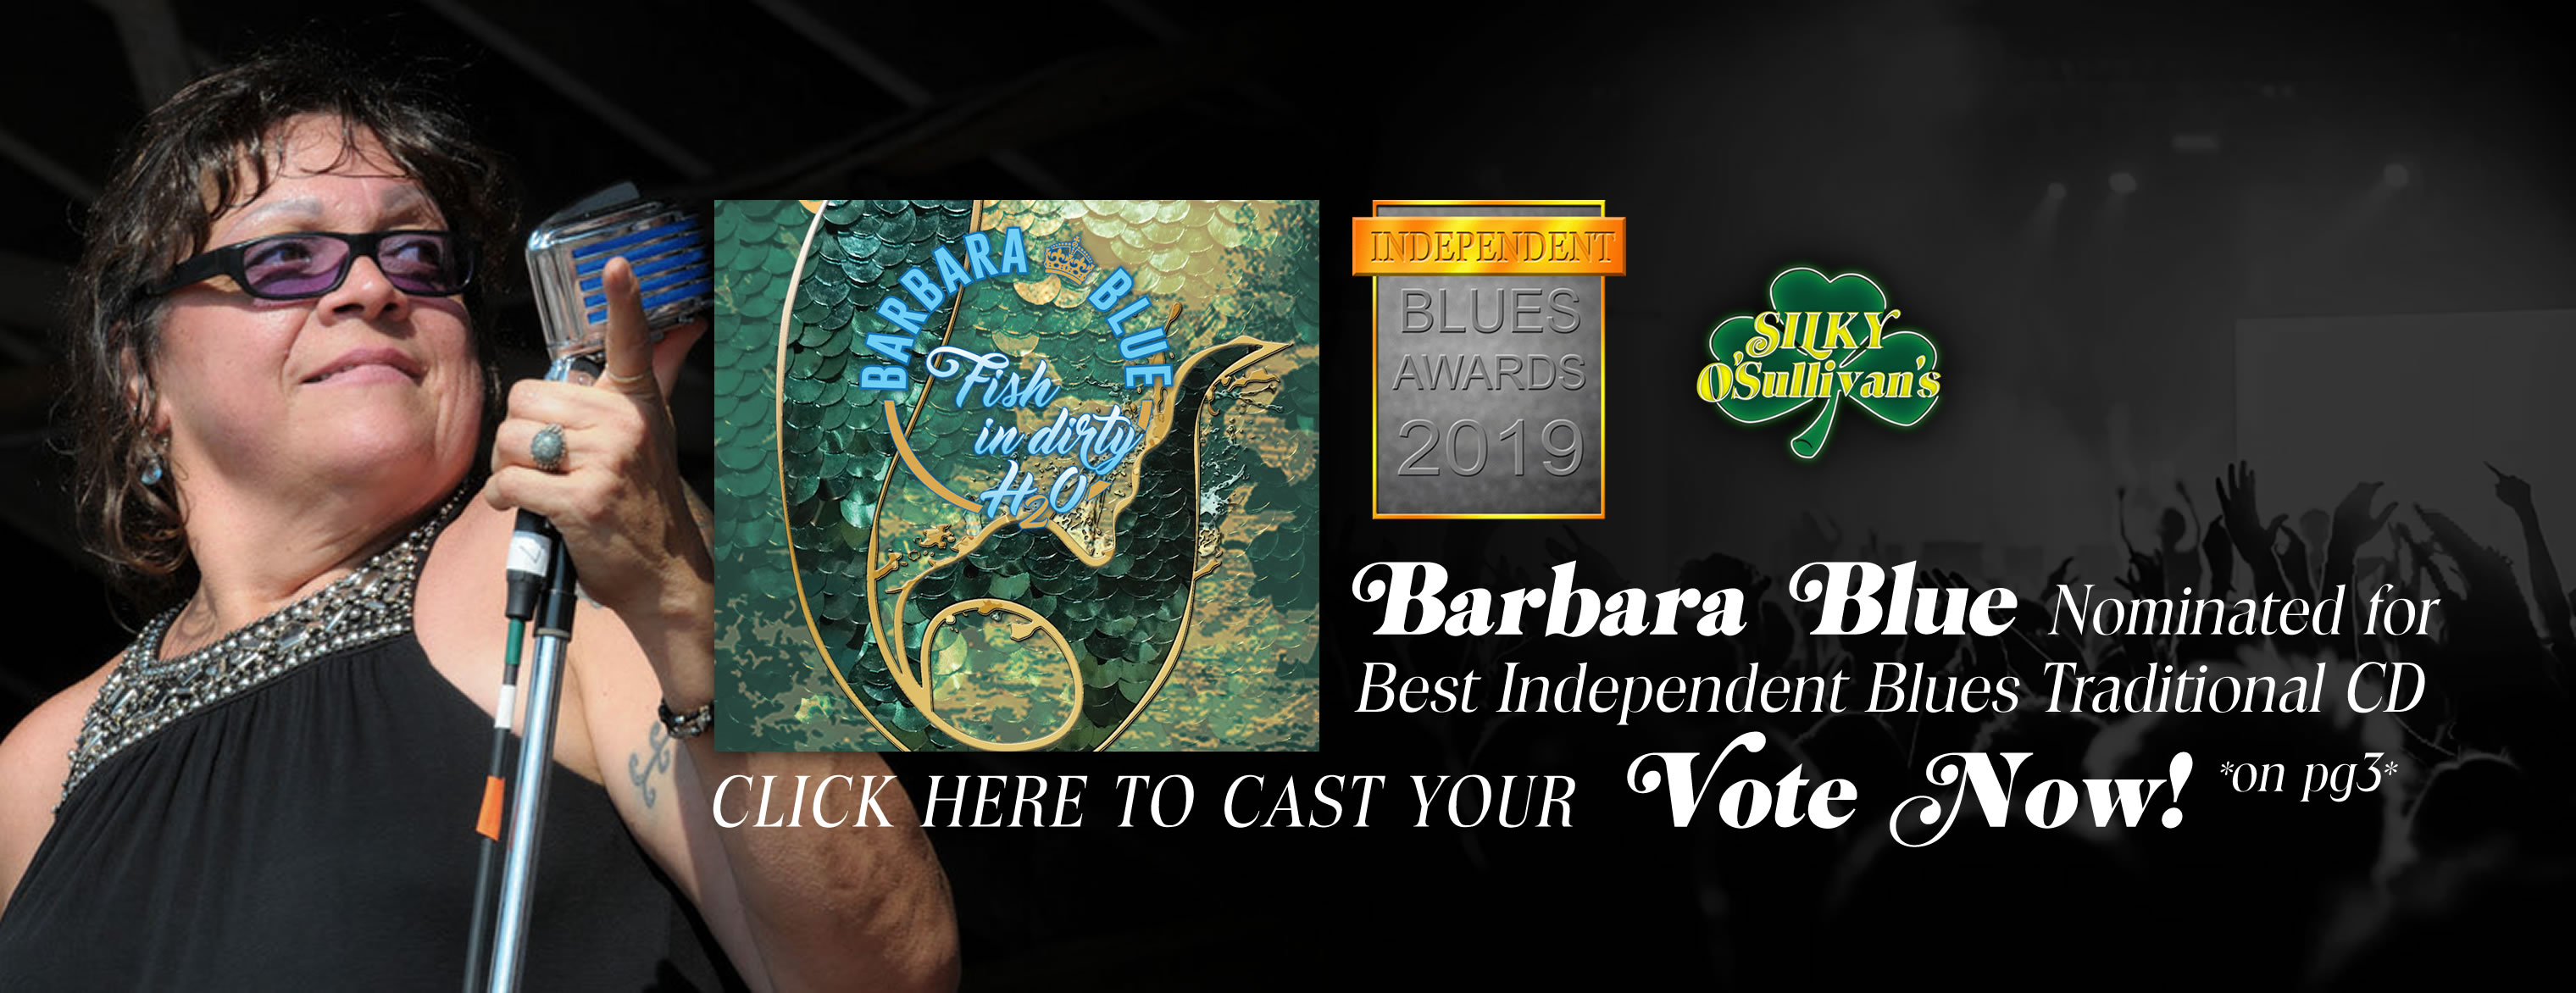 Vote Barbara Blue nominated for Best Independent Blues Traditional CD